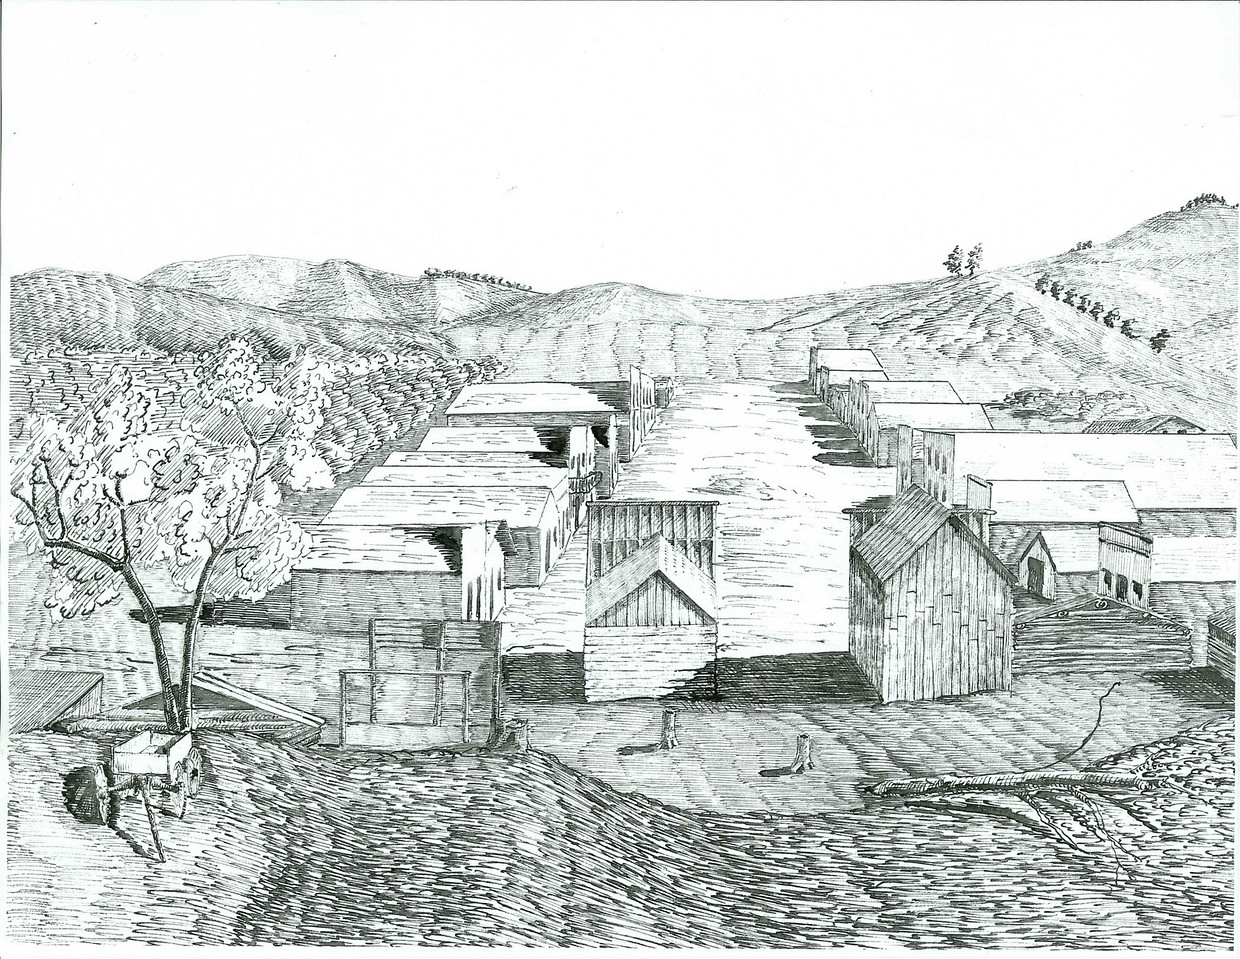 This undated sketch of Crook City in Dakota Territory is courtesy of the Adams Museum in Deadwood, South Dakota.